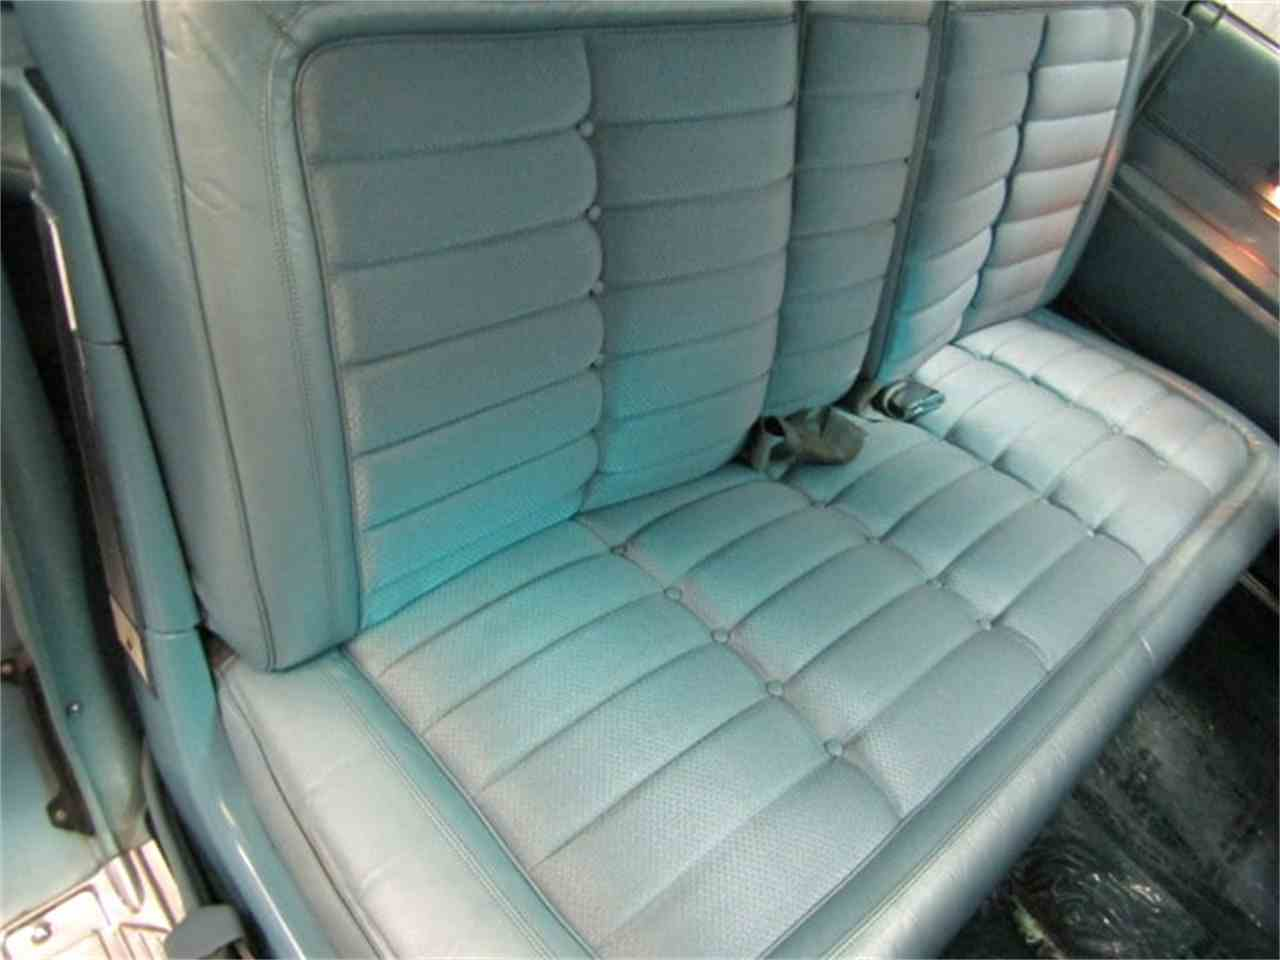 Large Picture of 1964 Chrysler Imperial located in Virginia - $21,970.00 Offered by Duncan Imports & Classic Cars - JLDR